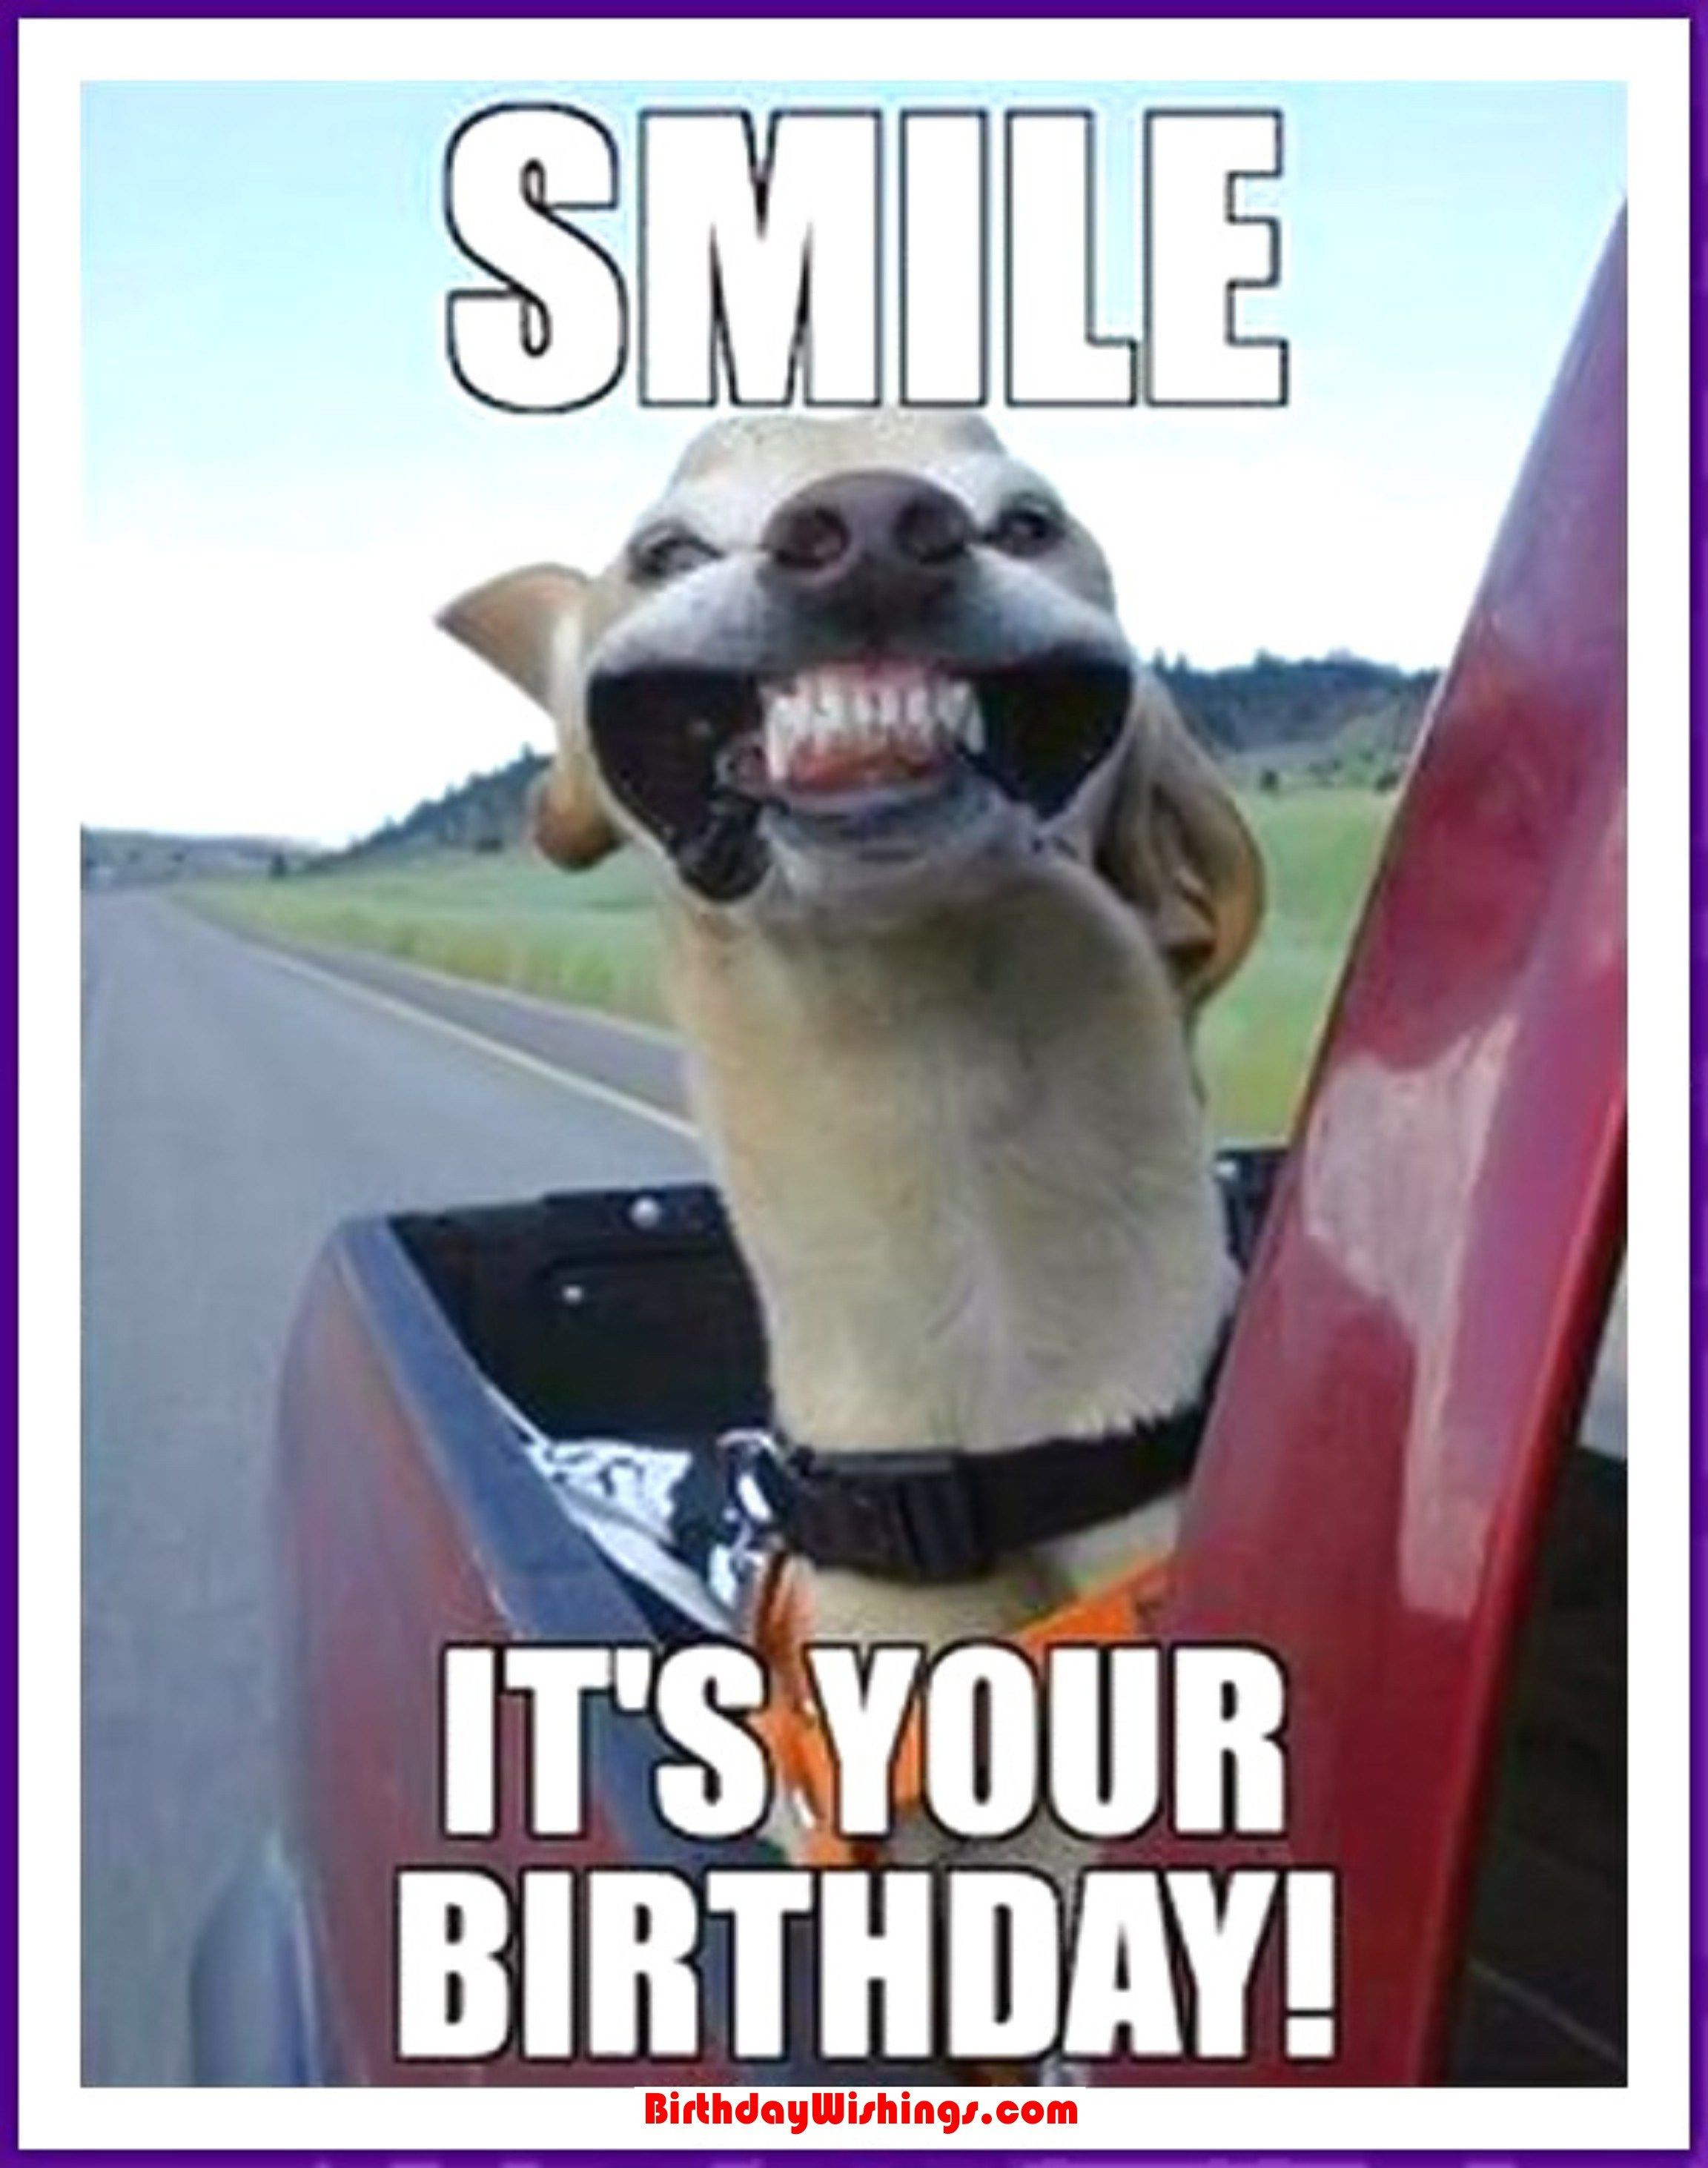 Happy Birthday Images Funny  Funny Happy Birthday Memes With cats Dogs & Funny Animals